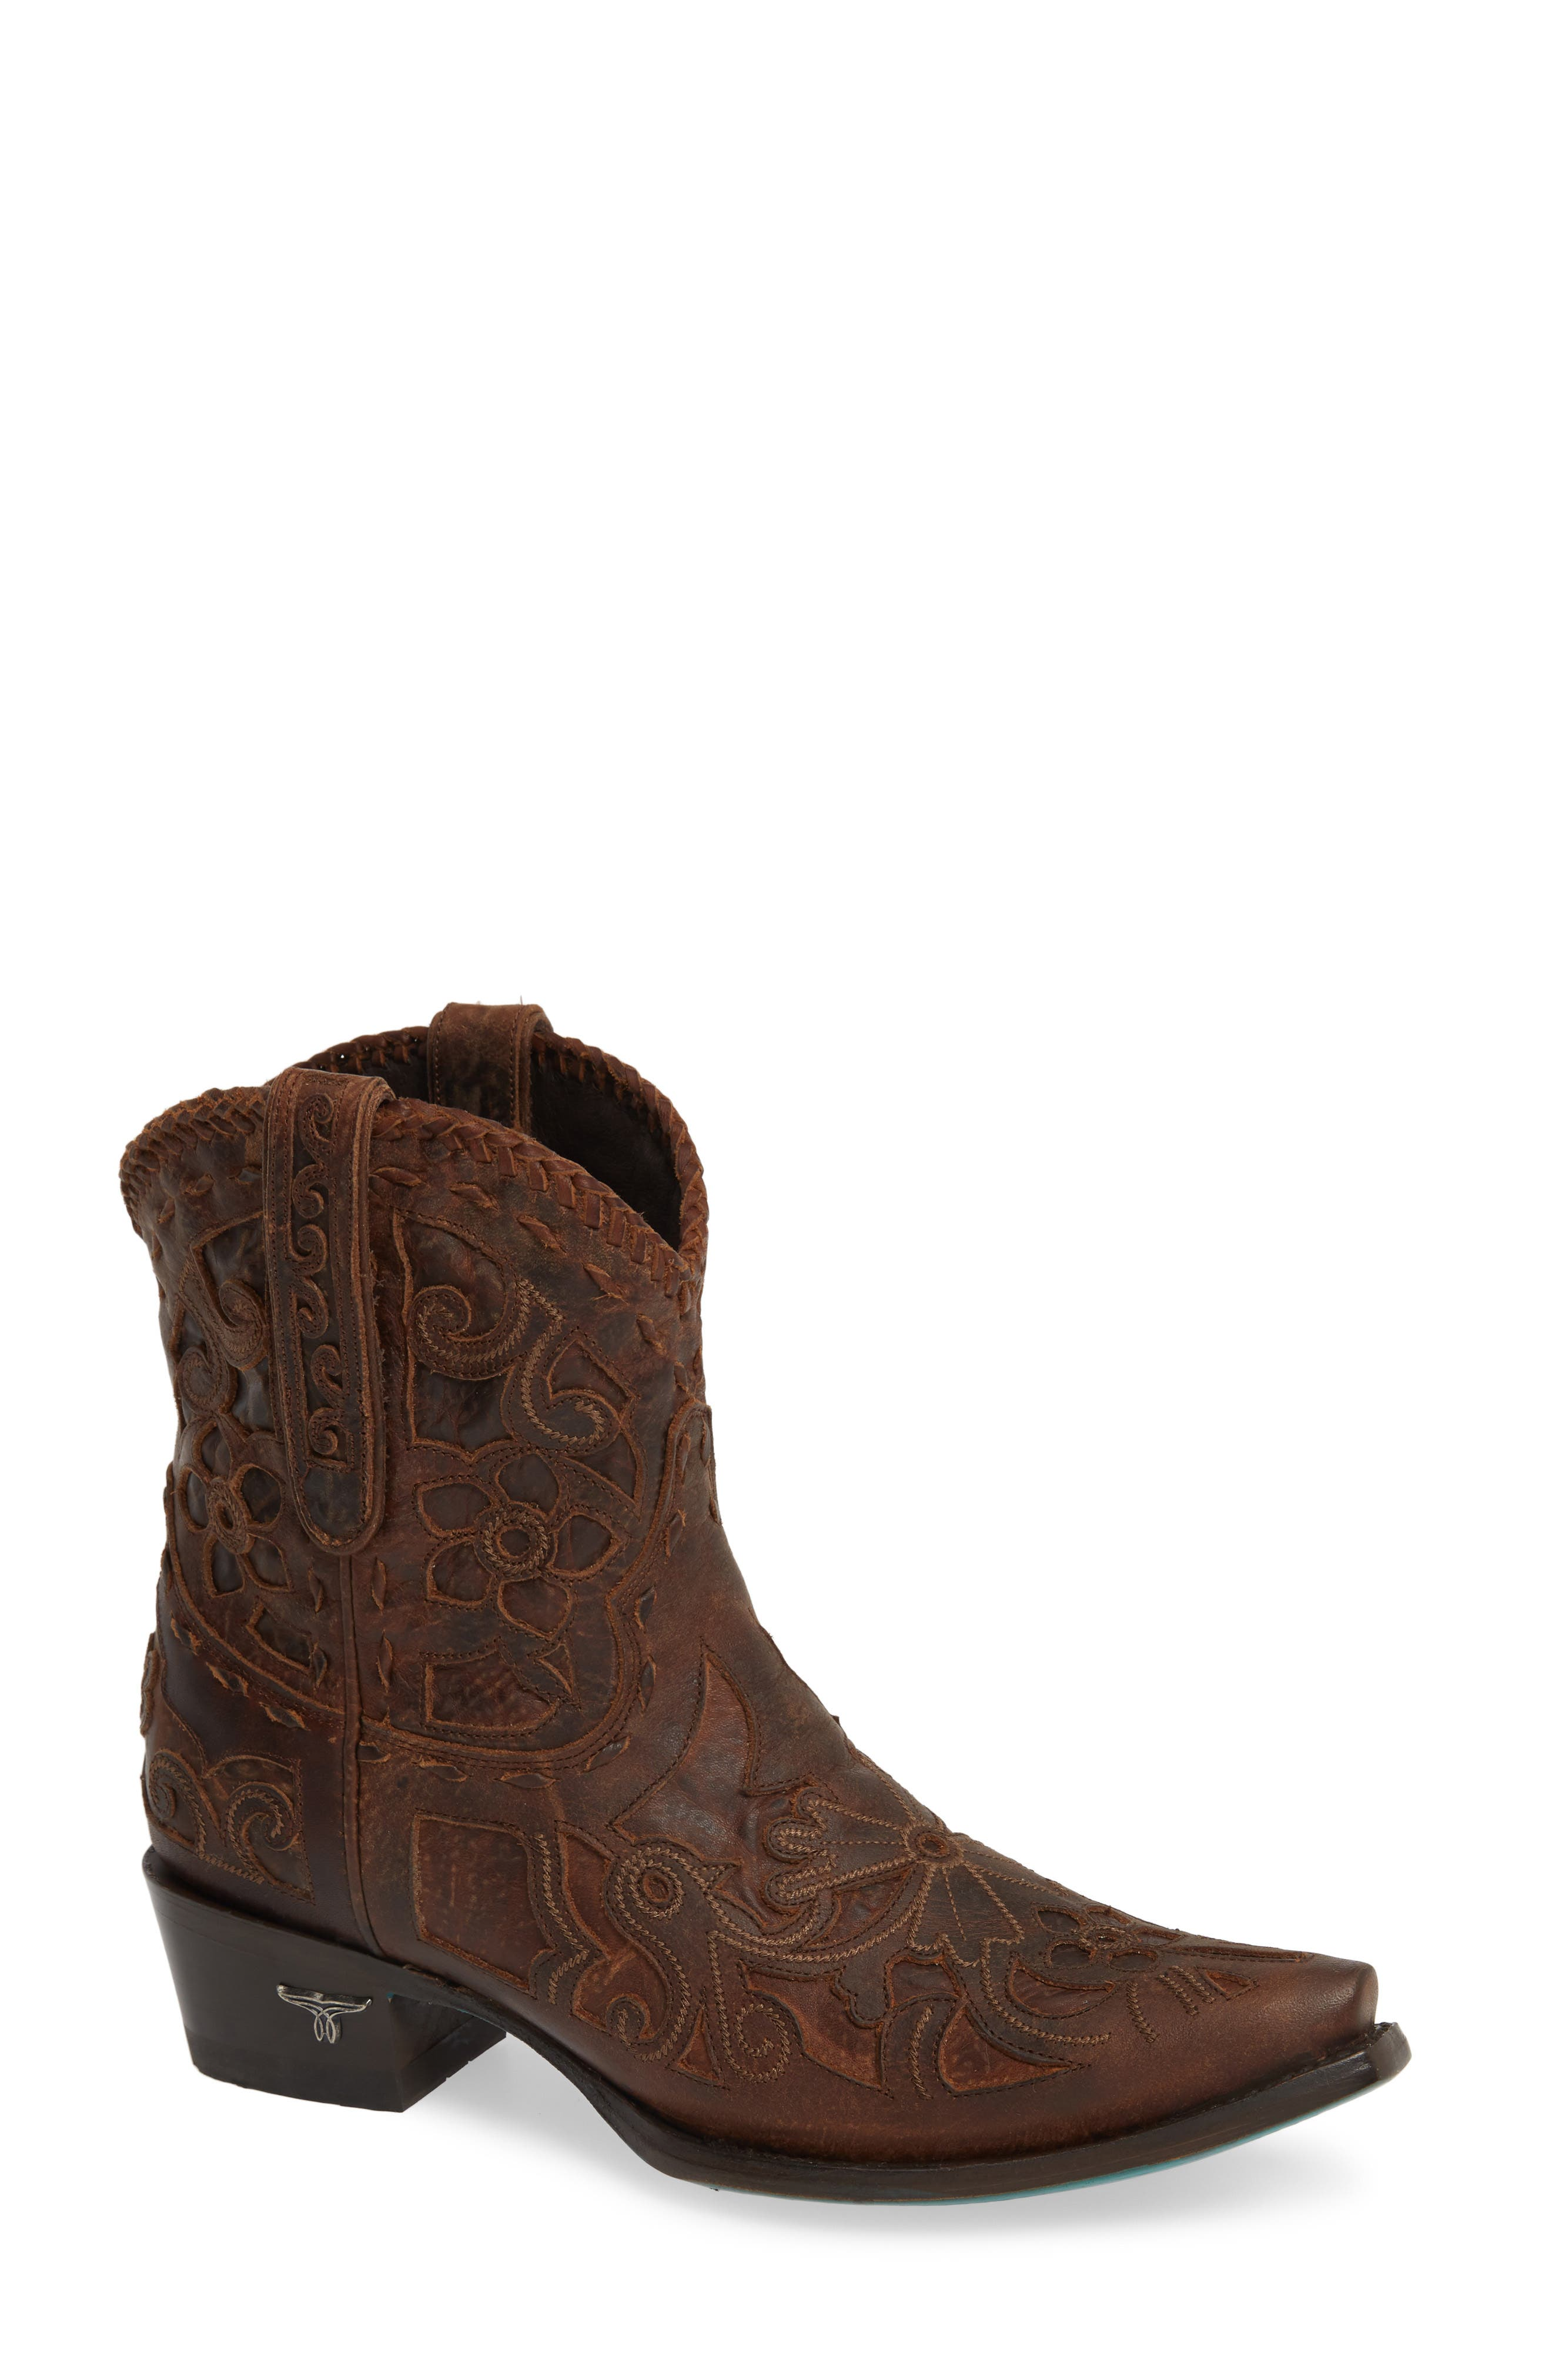 LANE BOOTS,                             Robin Western Boot,                             Main thumbnail 1, color,                             DARK BROWN LEATHER